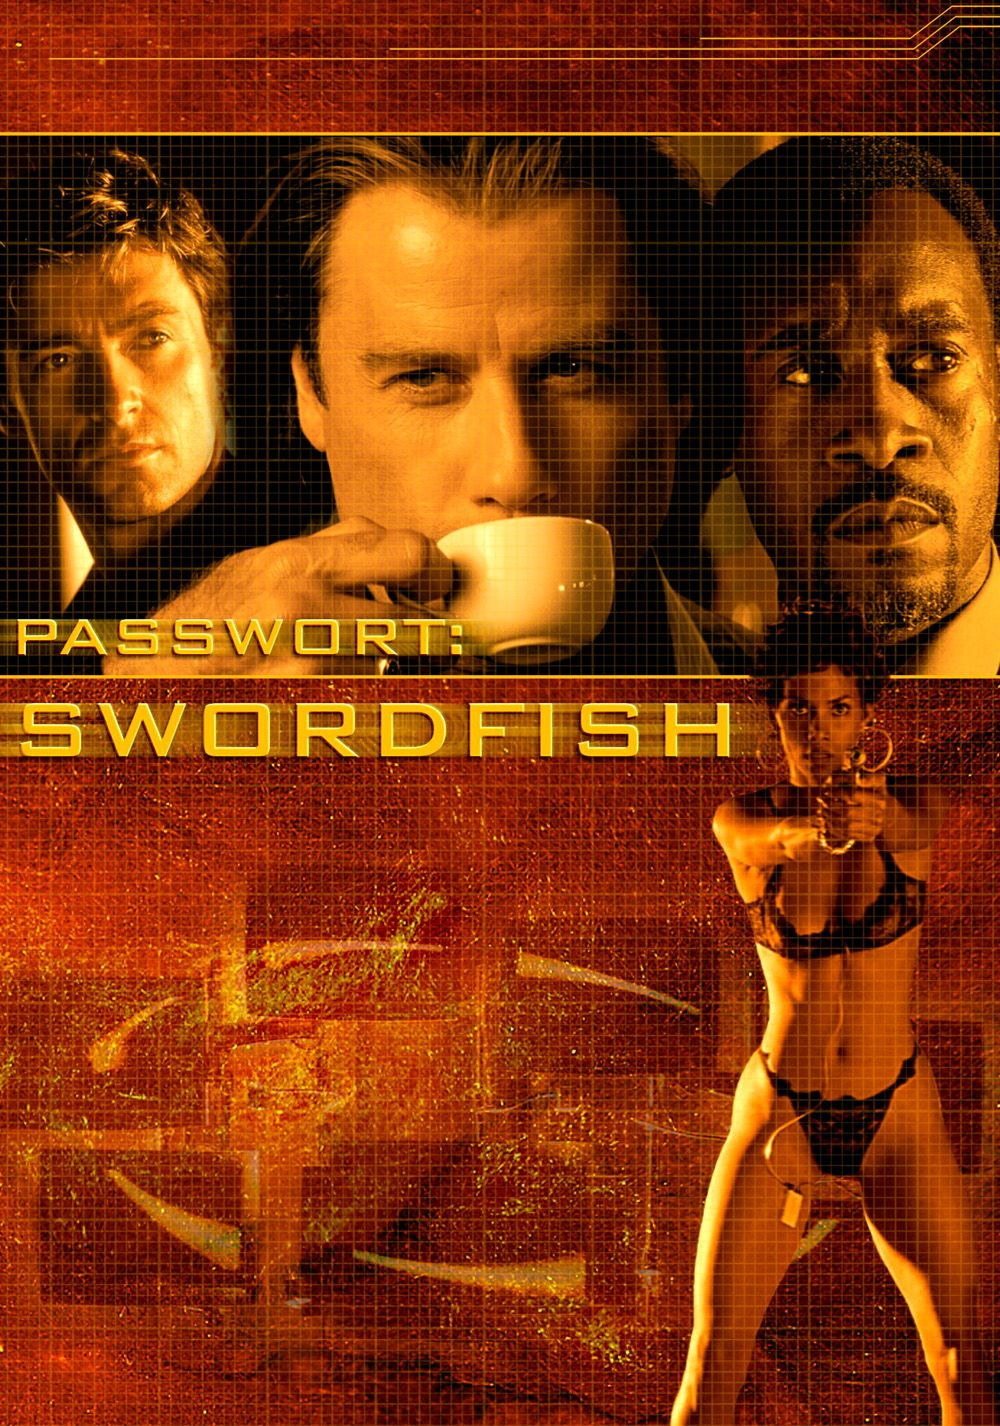 Swordfish full movie free download